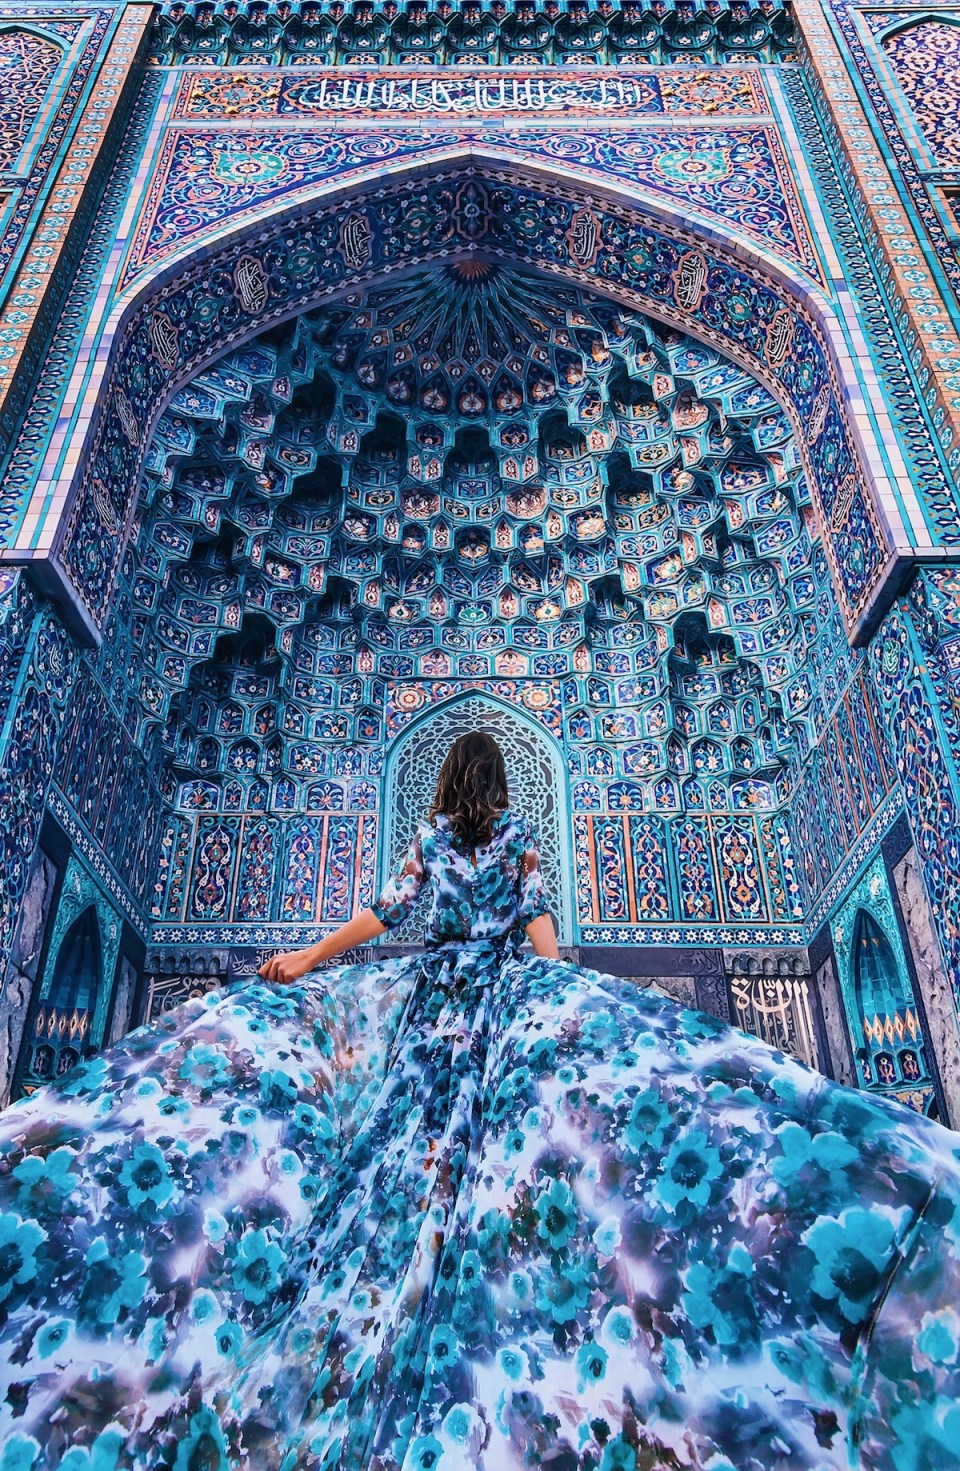 Best of 2017: 40 Amazing Photographs From Around the World